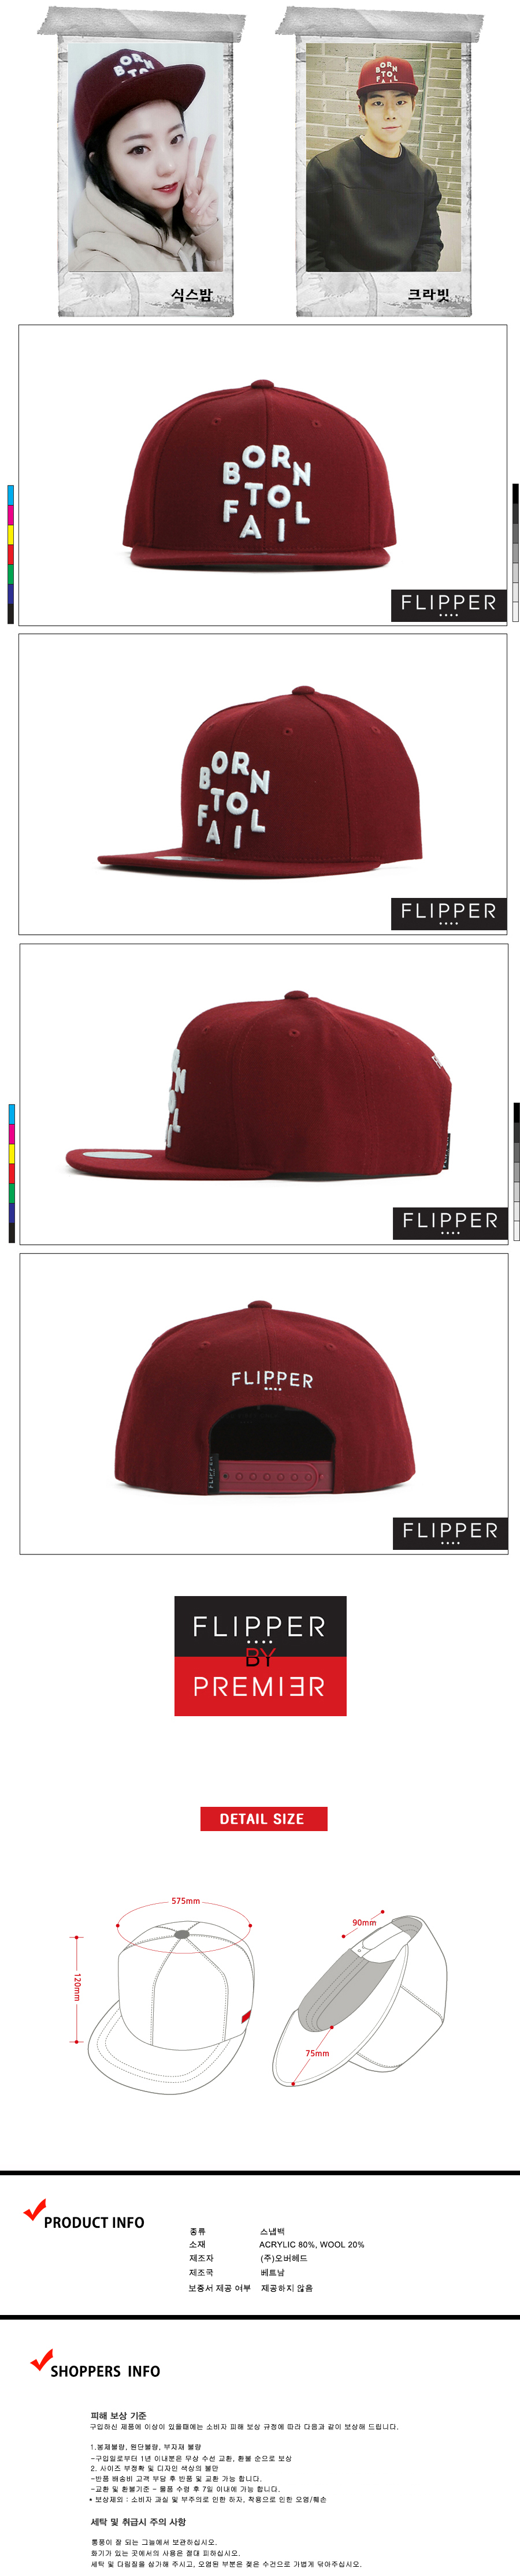 [ PREMIER ] [Premier] Flipper Snapback Born To Fail Wine (FL003)